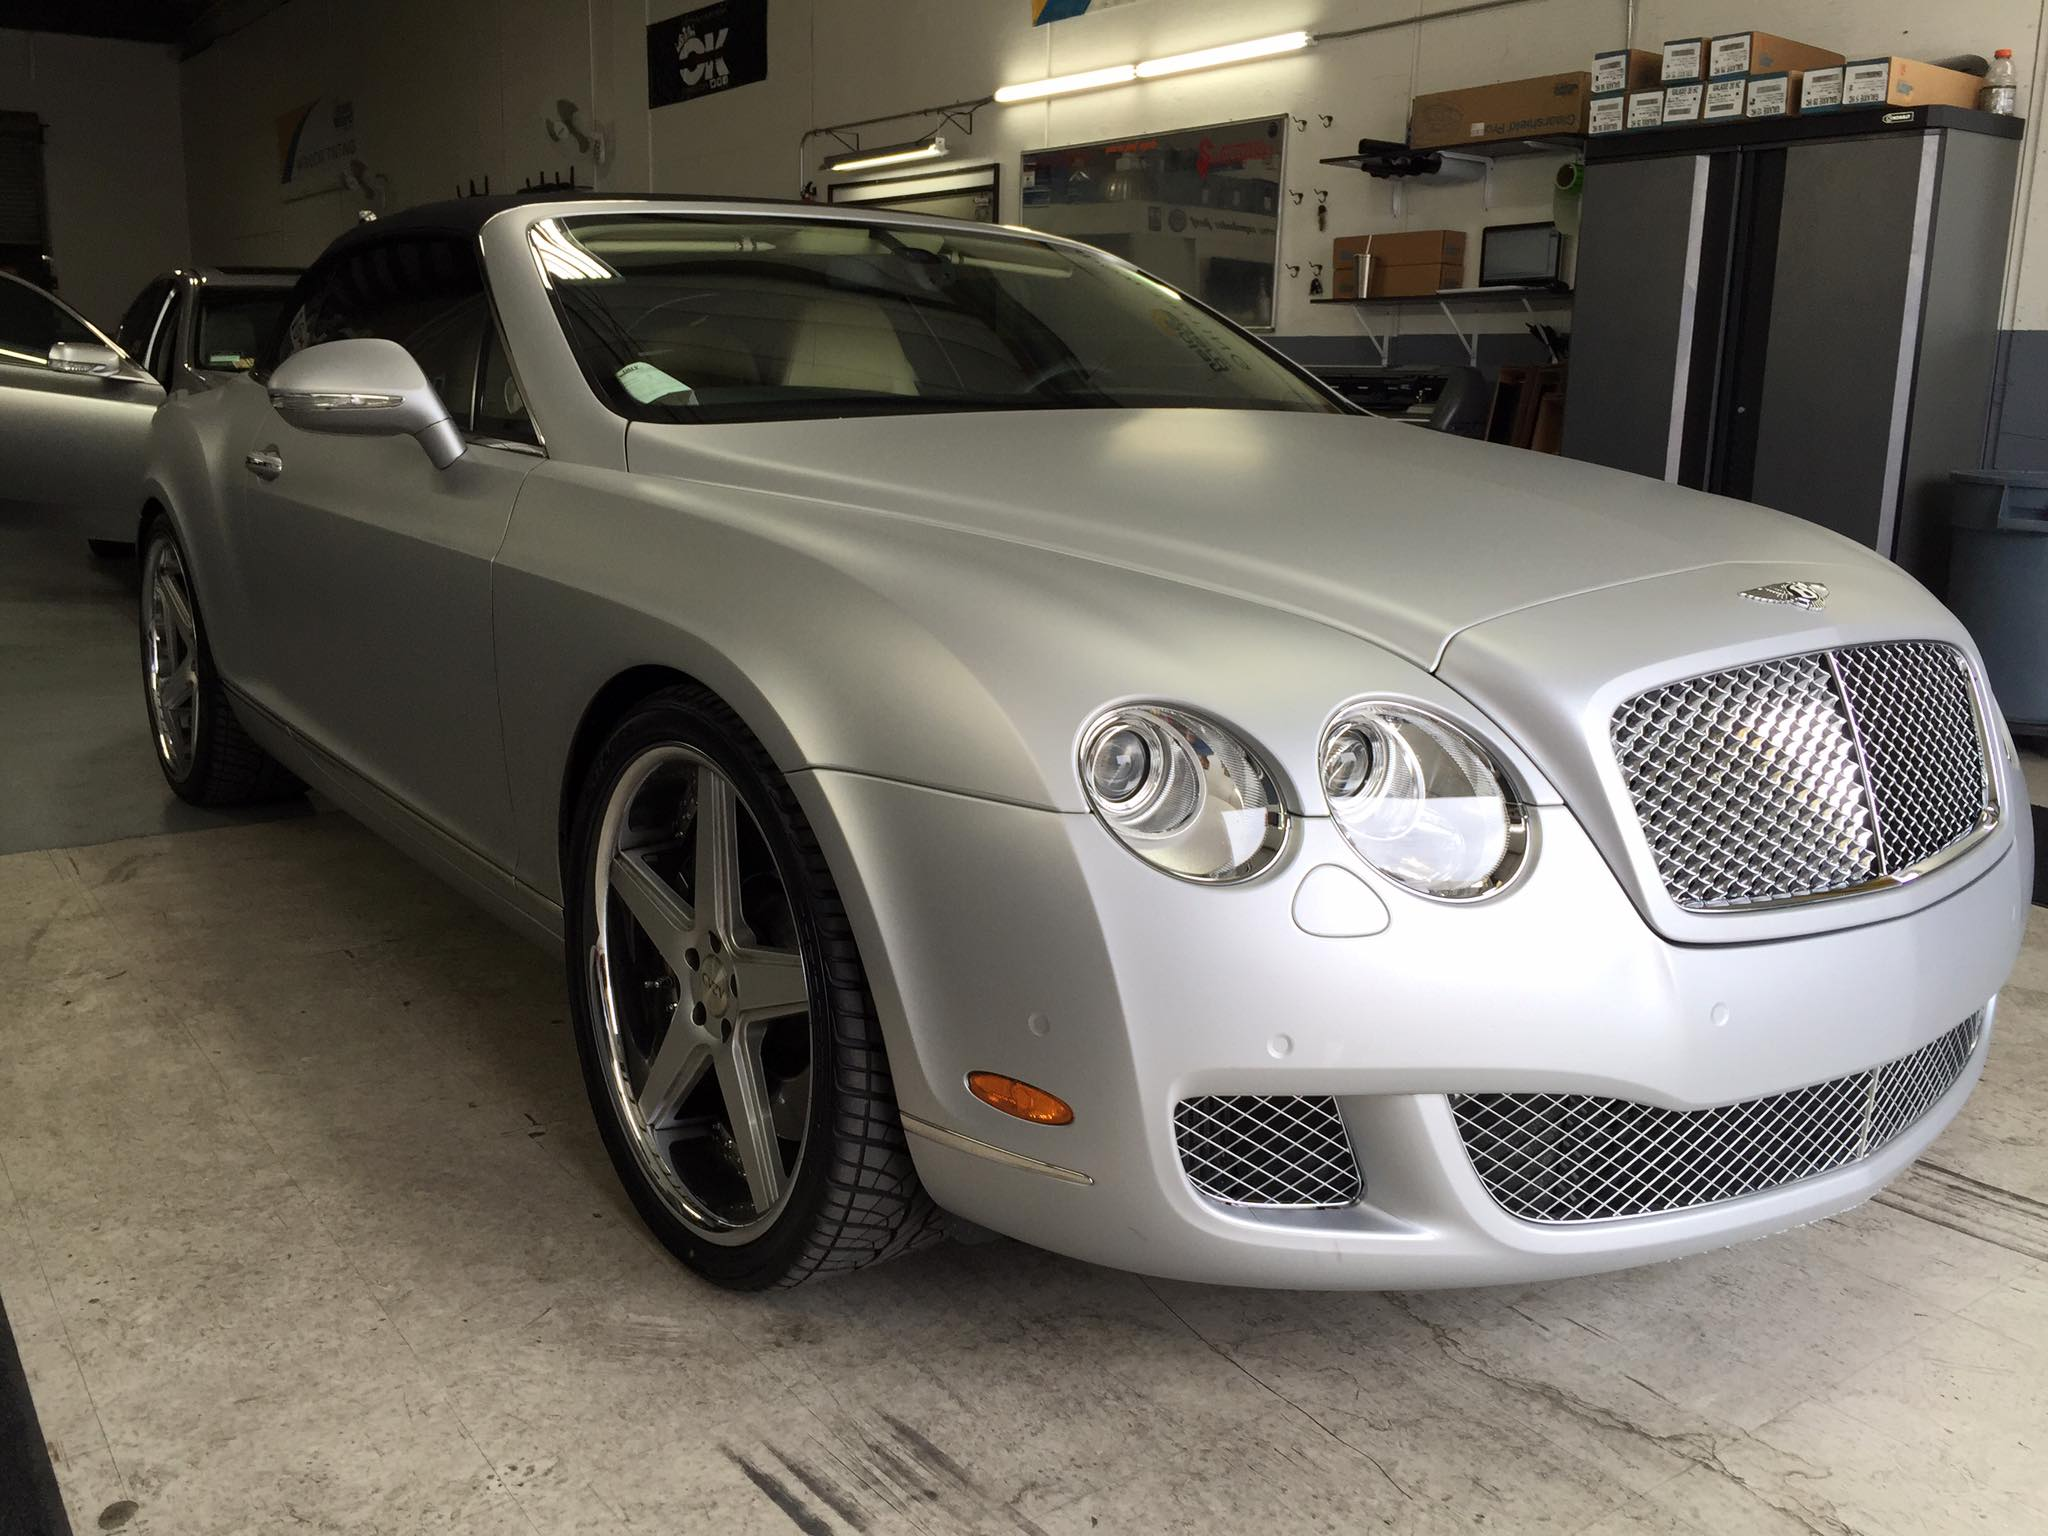 Automotive Window Tinting in Madera, California & the Surrounding Area